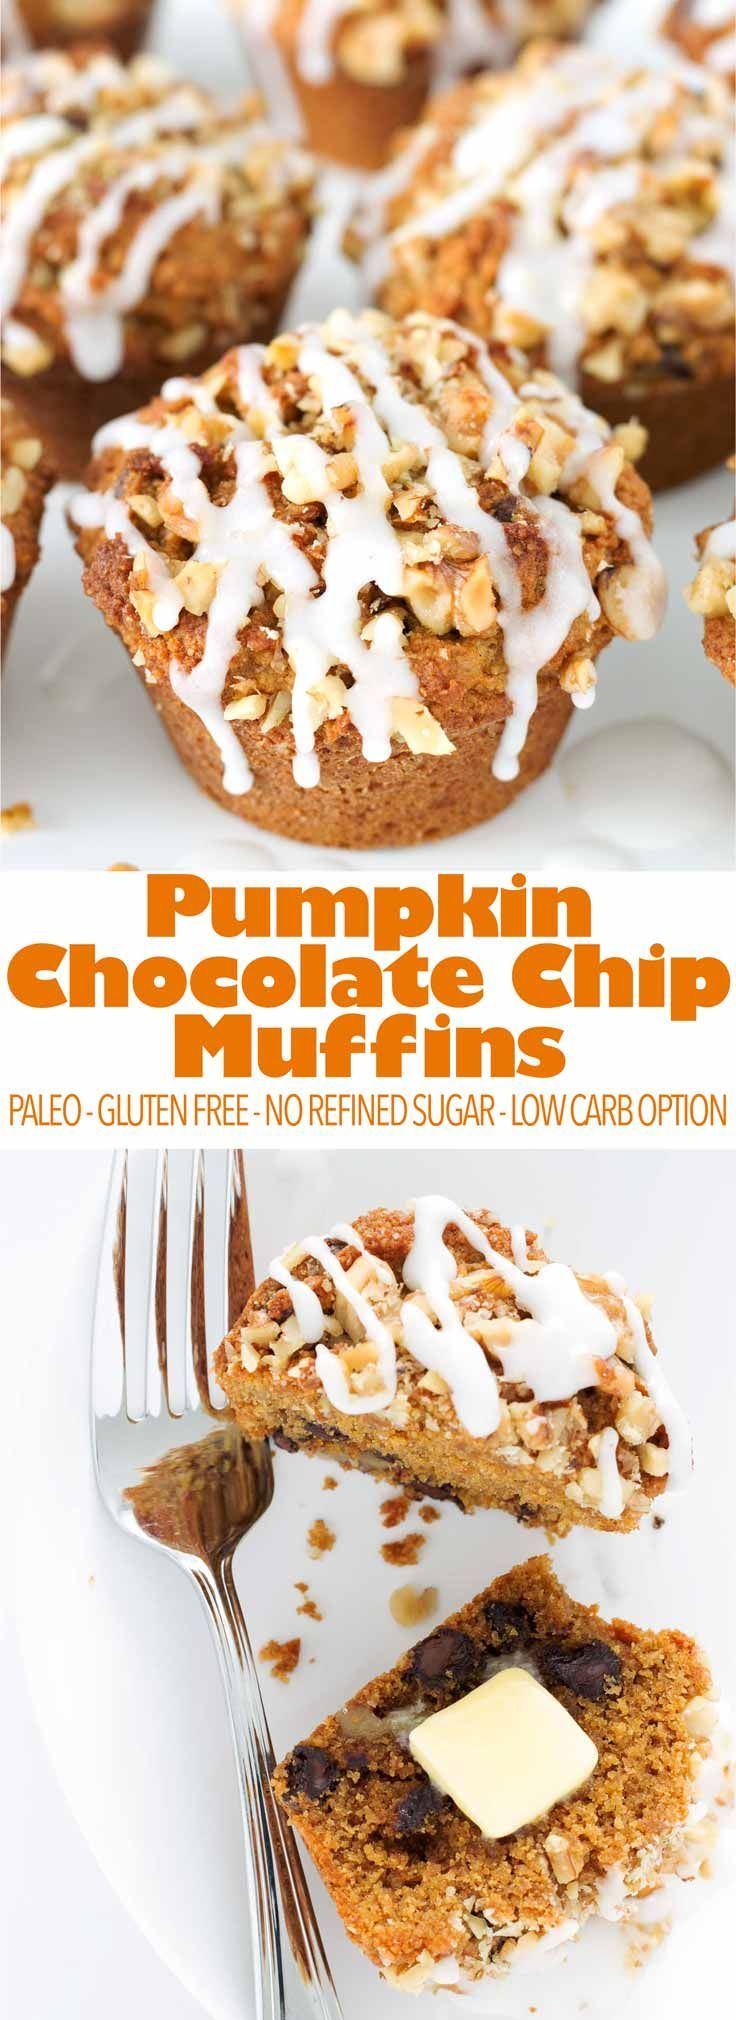 A seasonal favorite made healthy! These pumpkin chocolate chip muffins are easy to make, paleo, gluten free, and dairy free!